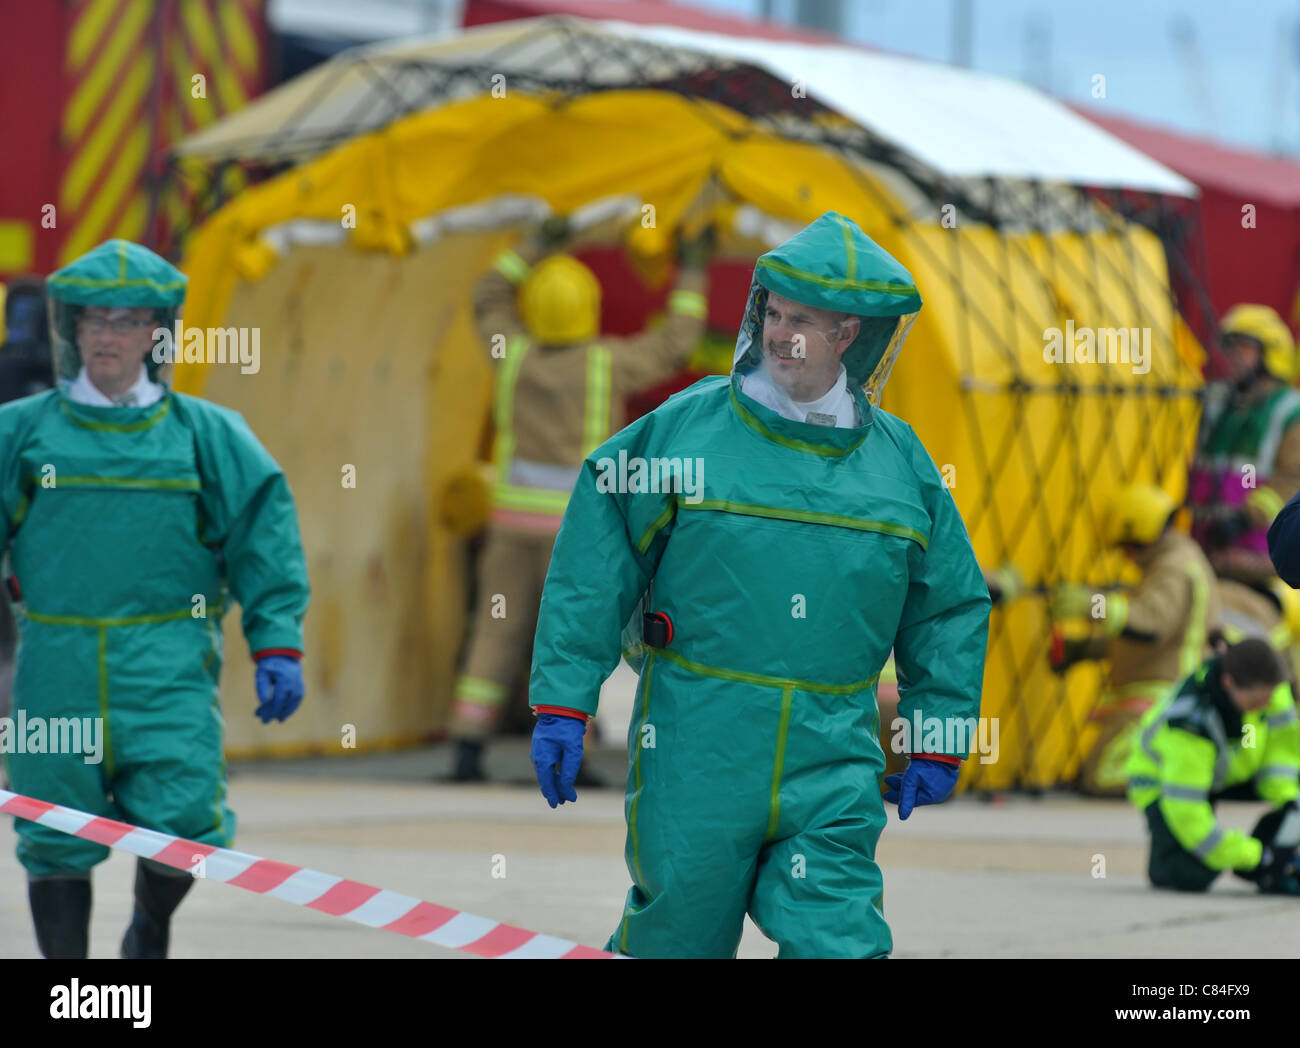 UK, Major disaster exercise at the olympic sailing venue, Portland in Dorset, Over 150 police, fire, ambulance and - Stock Image